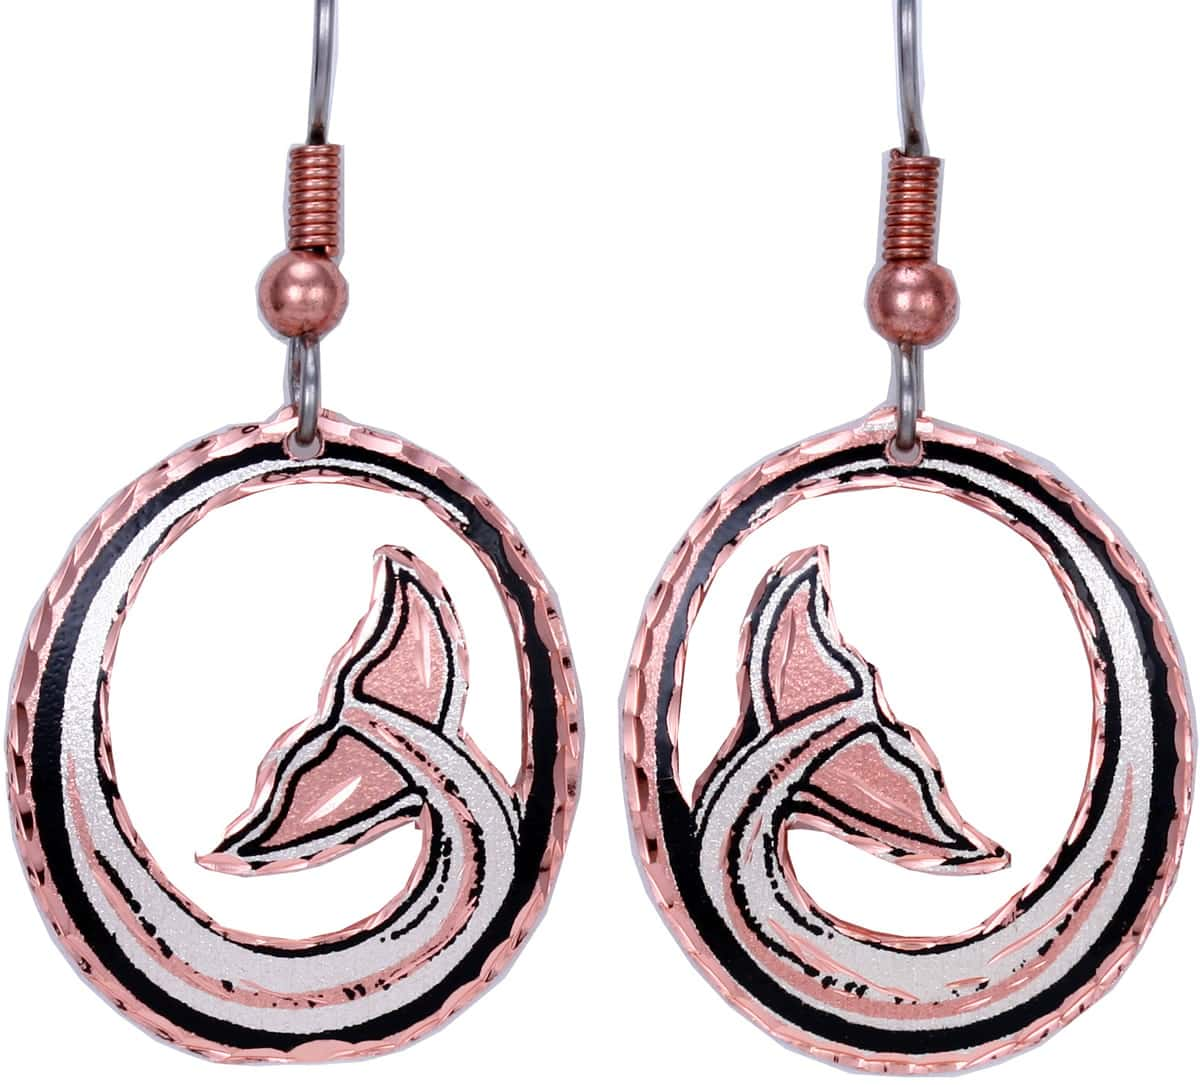 Cut out whale tail earrings handmade from copper with silver plating